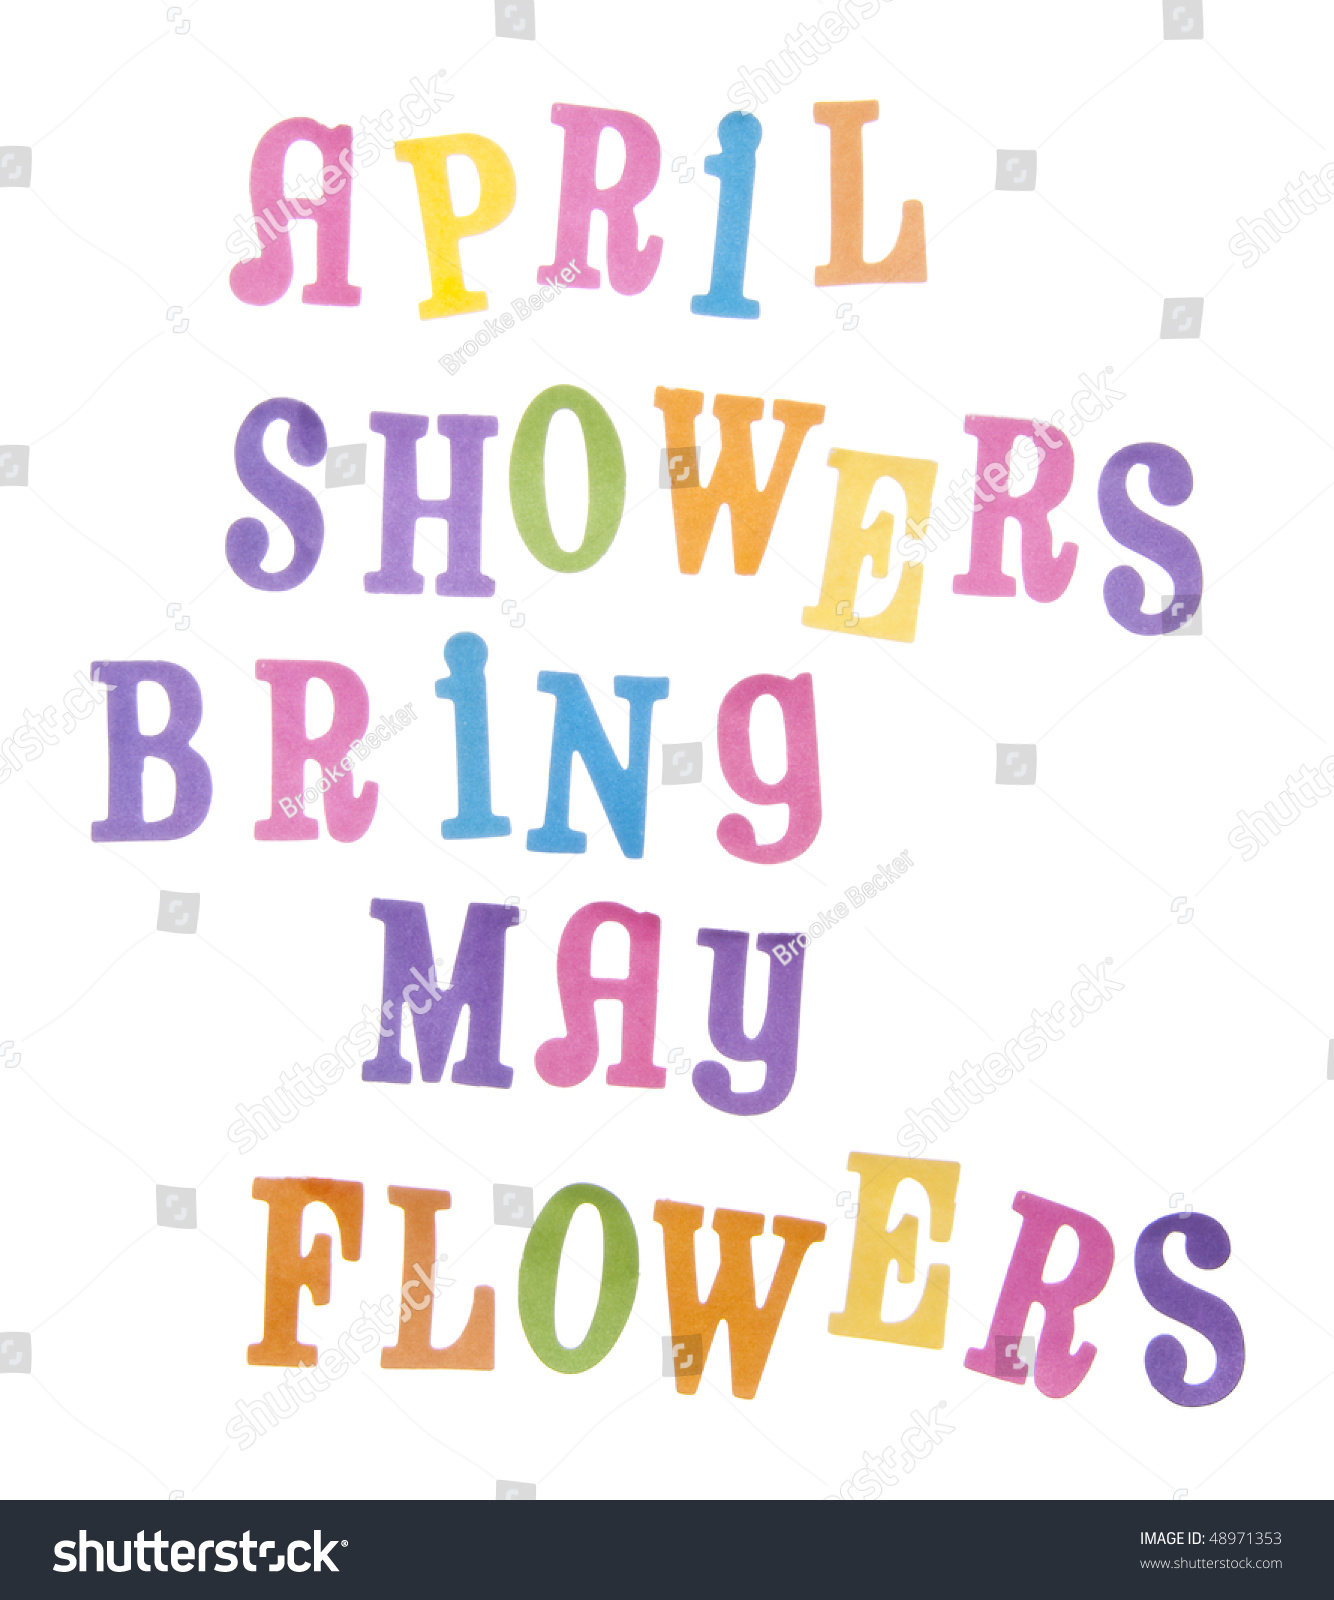 Popular saying april showers bring may stock photo edit now the popular saying april showers bring may flowers in vibrant pastel colors isolated on white with mightylinksfo